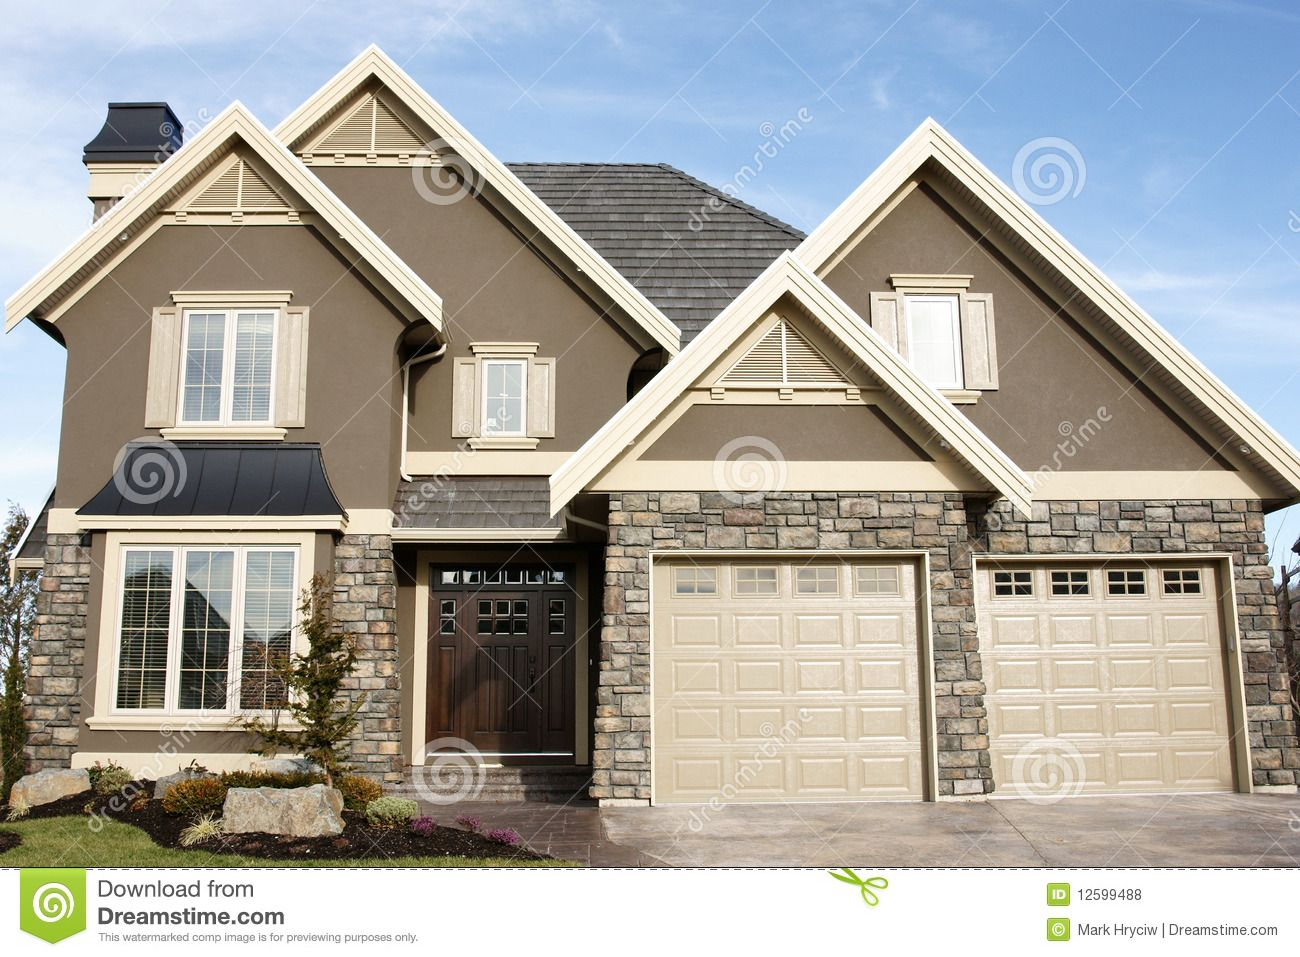 Exterior paint schemes stucco - Exterior Stucco Color Gallery New Home House Stucco Royalty Free Stock Photos Image